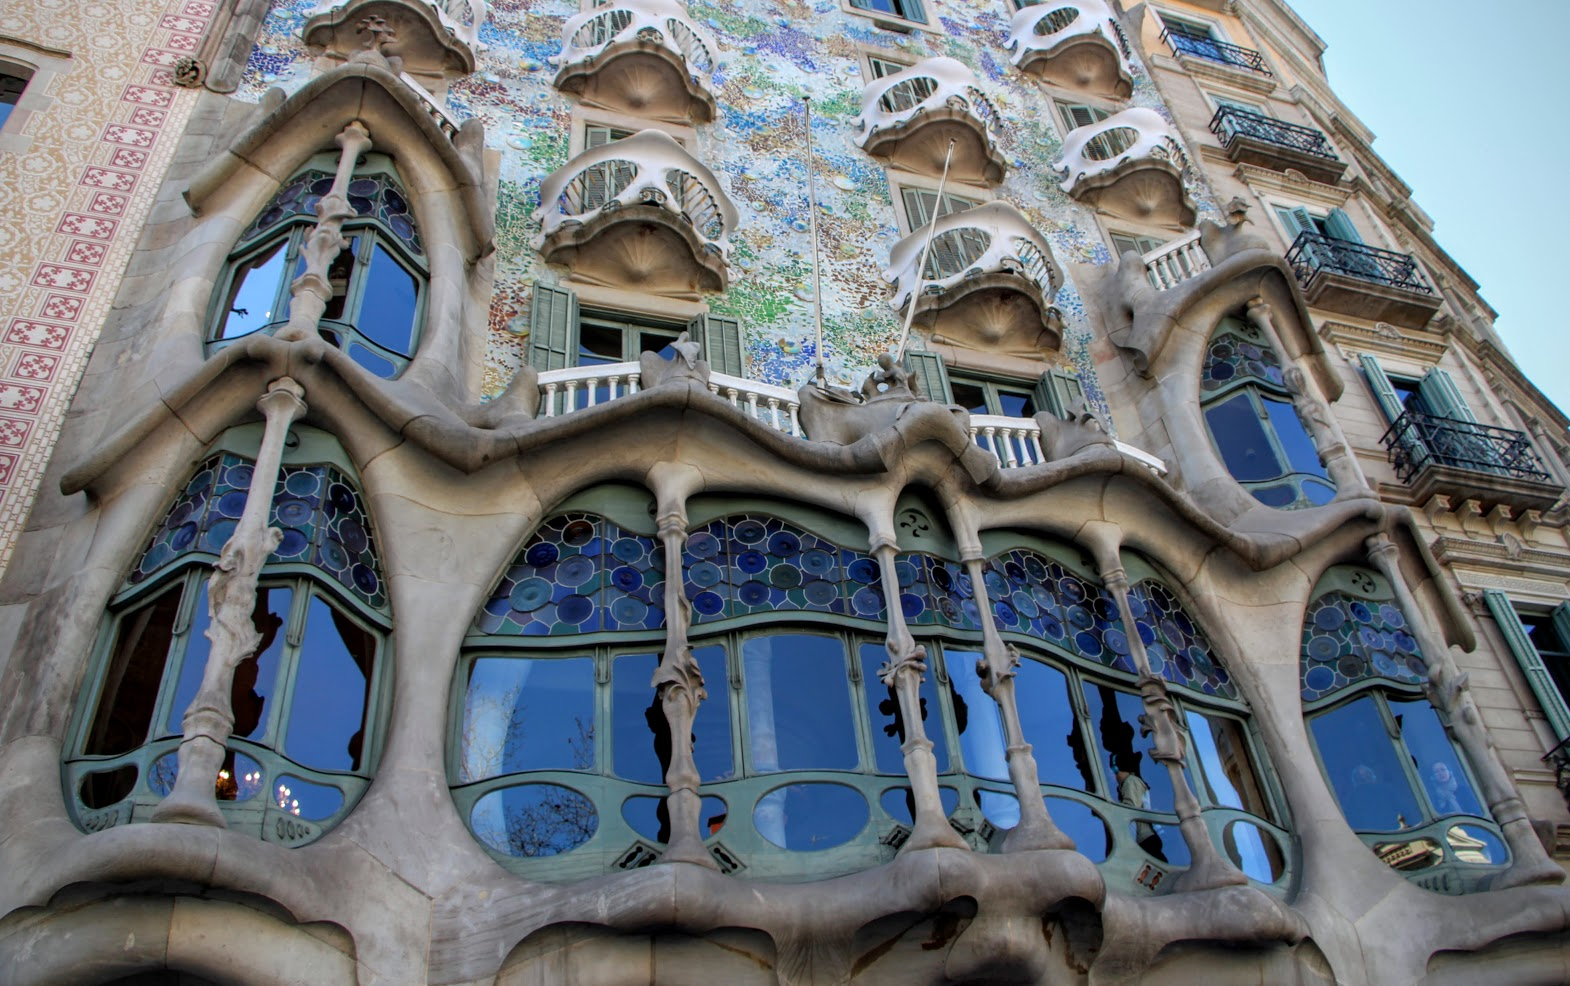 architecture by bike pedaling your own gaudi bike tour in barcelona